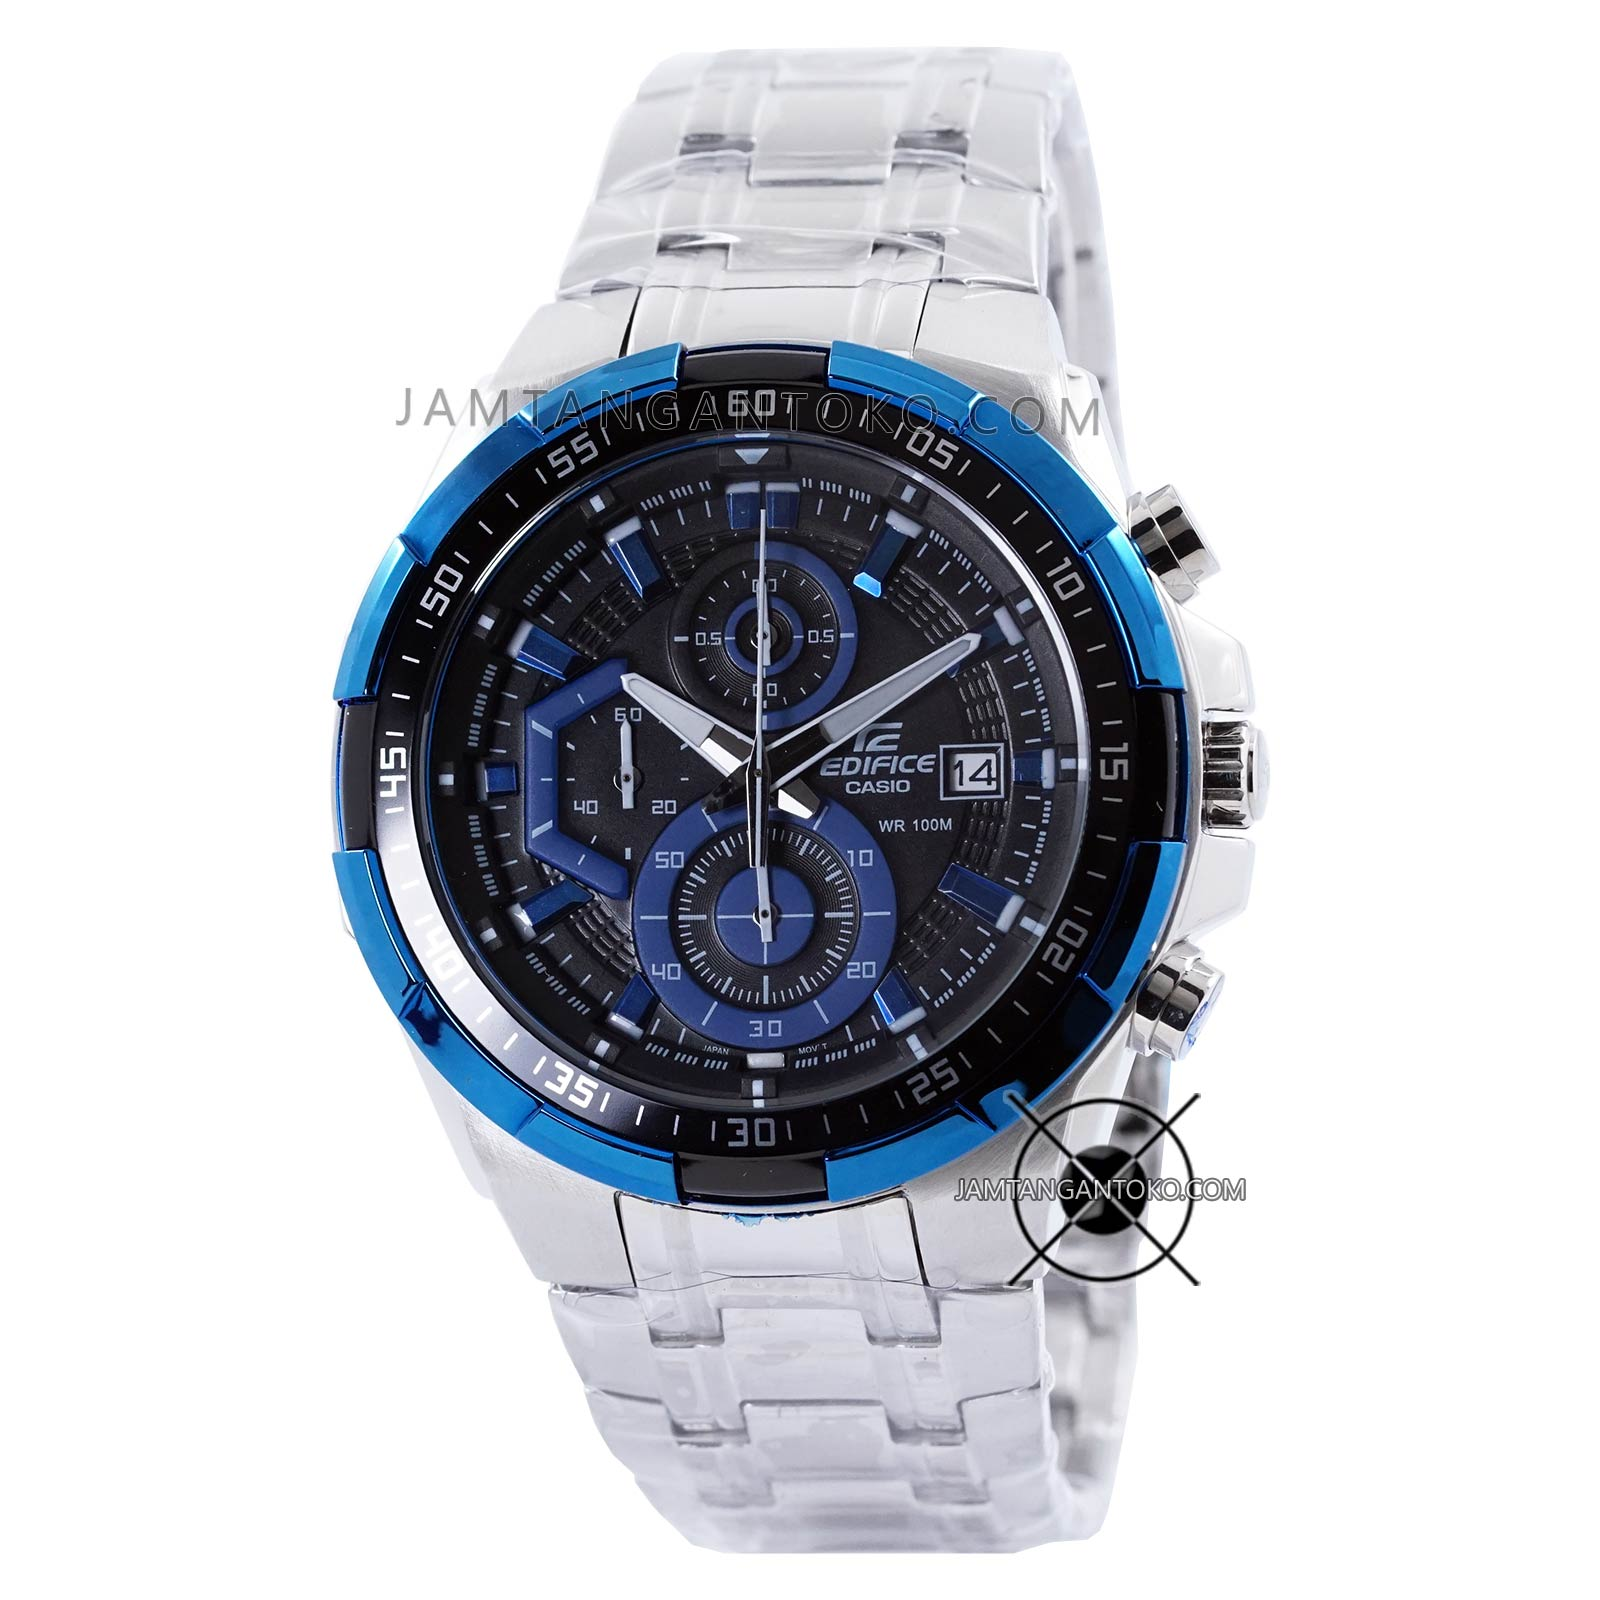 Search Results Harga Jam Tangan Fossil Original